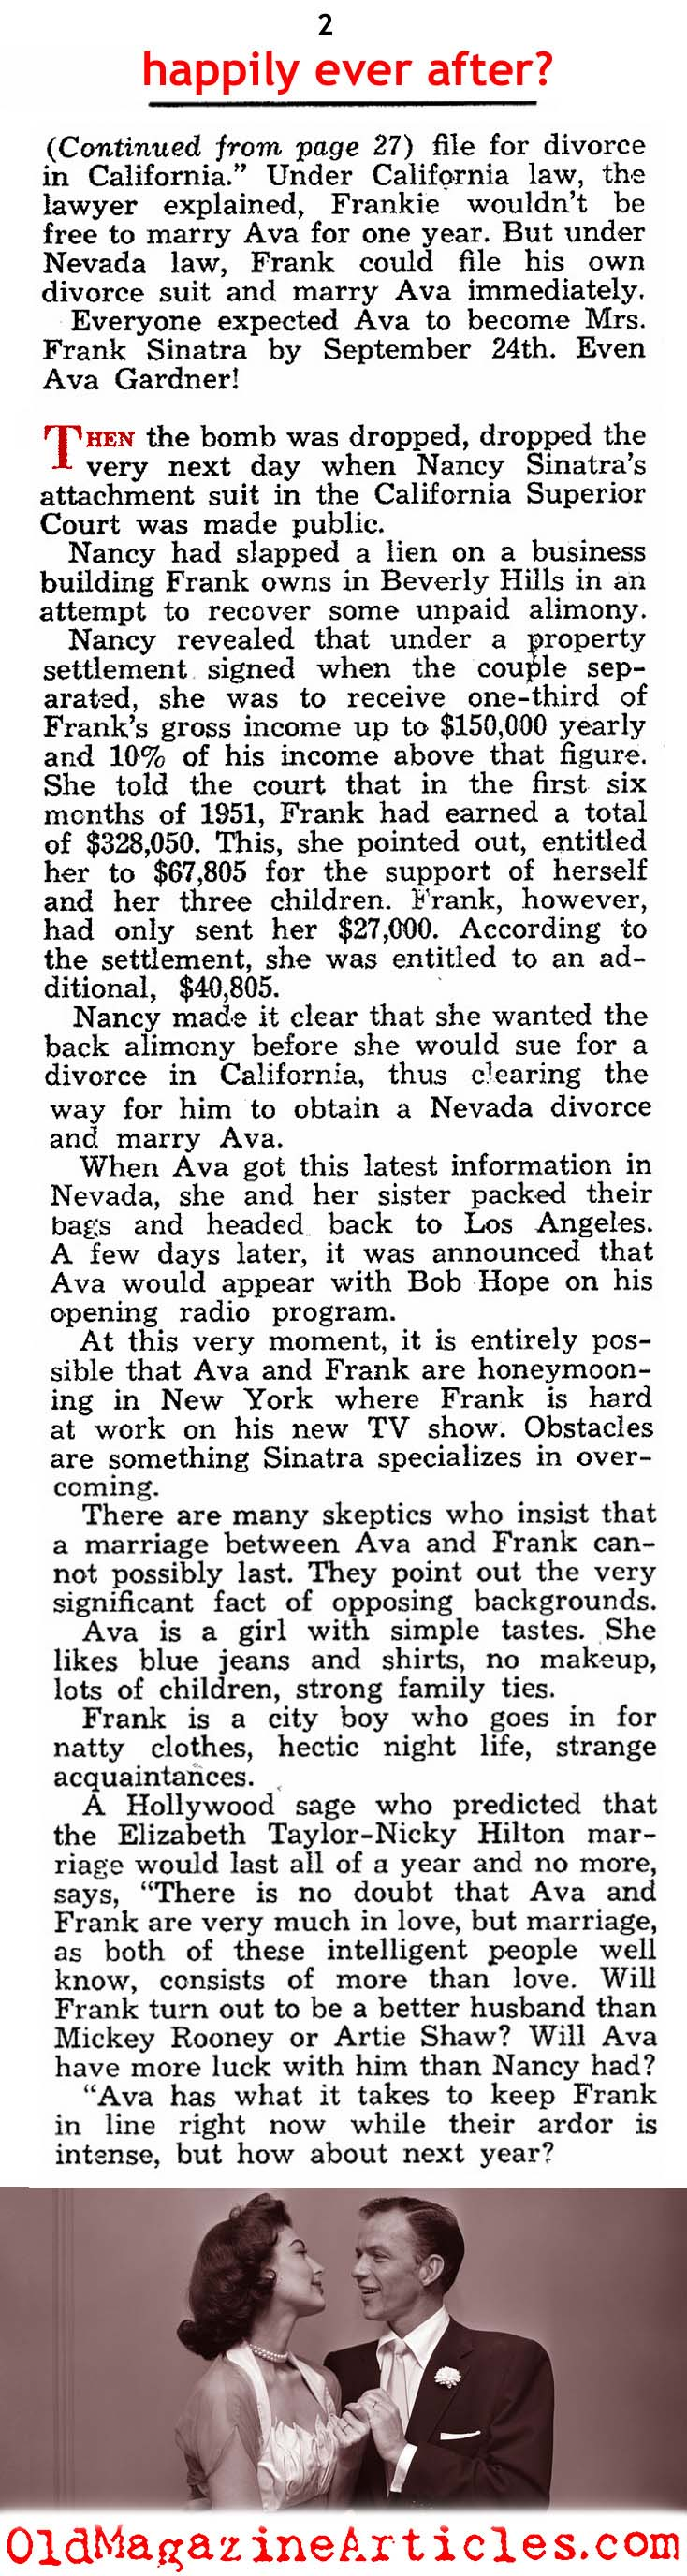 Frank Sinatra and Ava Gardner To  Wed  (Modern Screen, 1951)